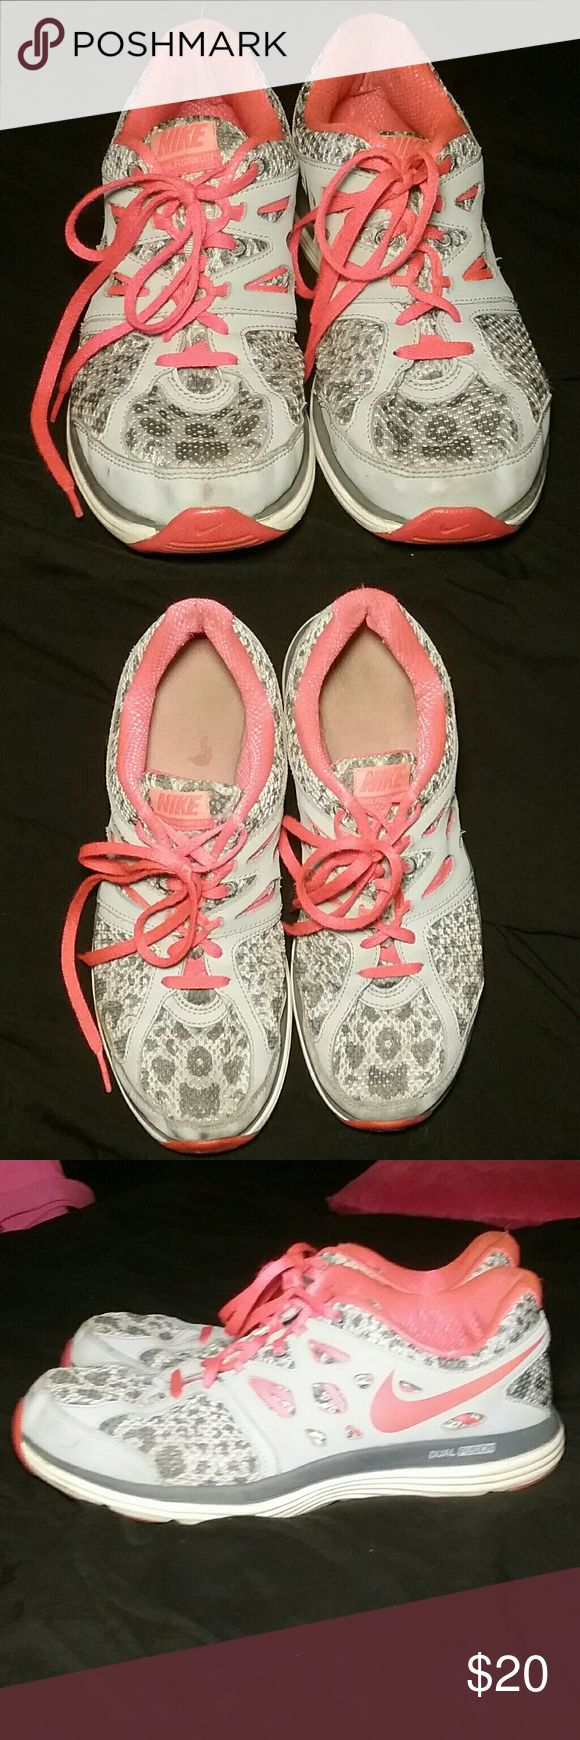 Grey and Coral Cheetah Nikes In used condition. Very very cute. No tears, just usual wear☺ color is an orangish pink. Nike Shoes Sneakers